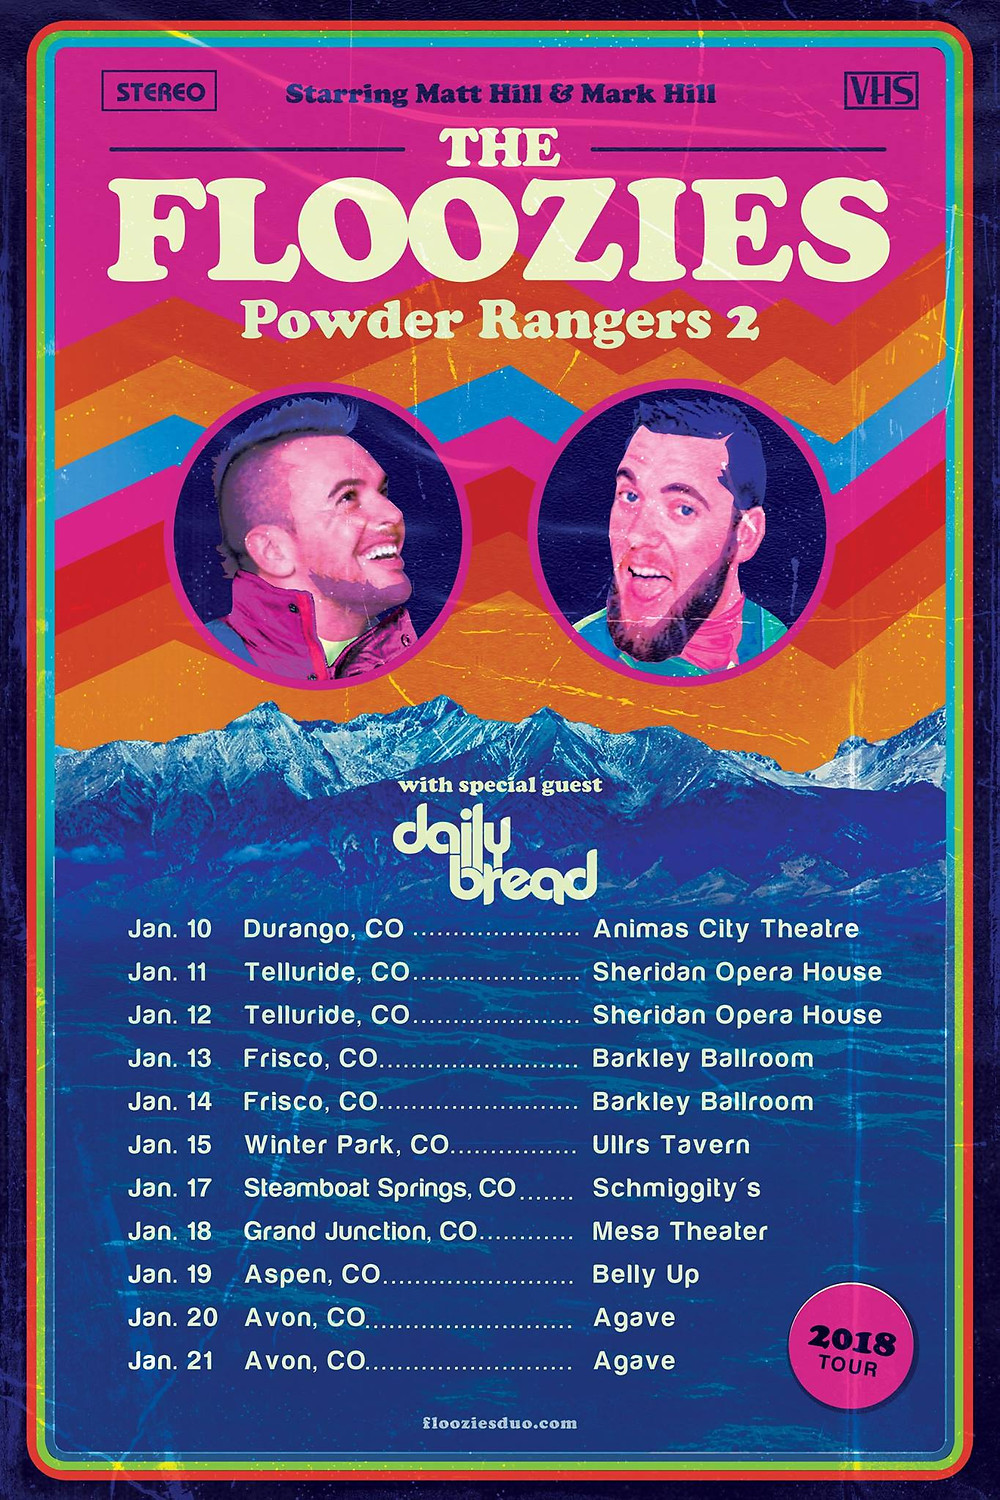 The Floozies Power Rangers 2 Winter Tour with Daily Bread